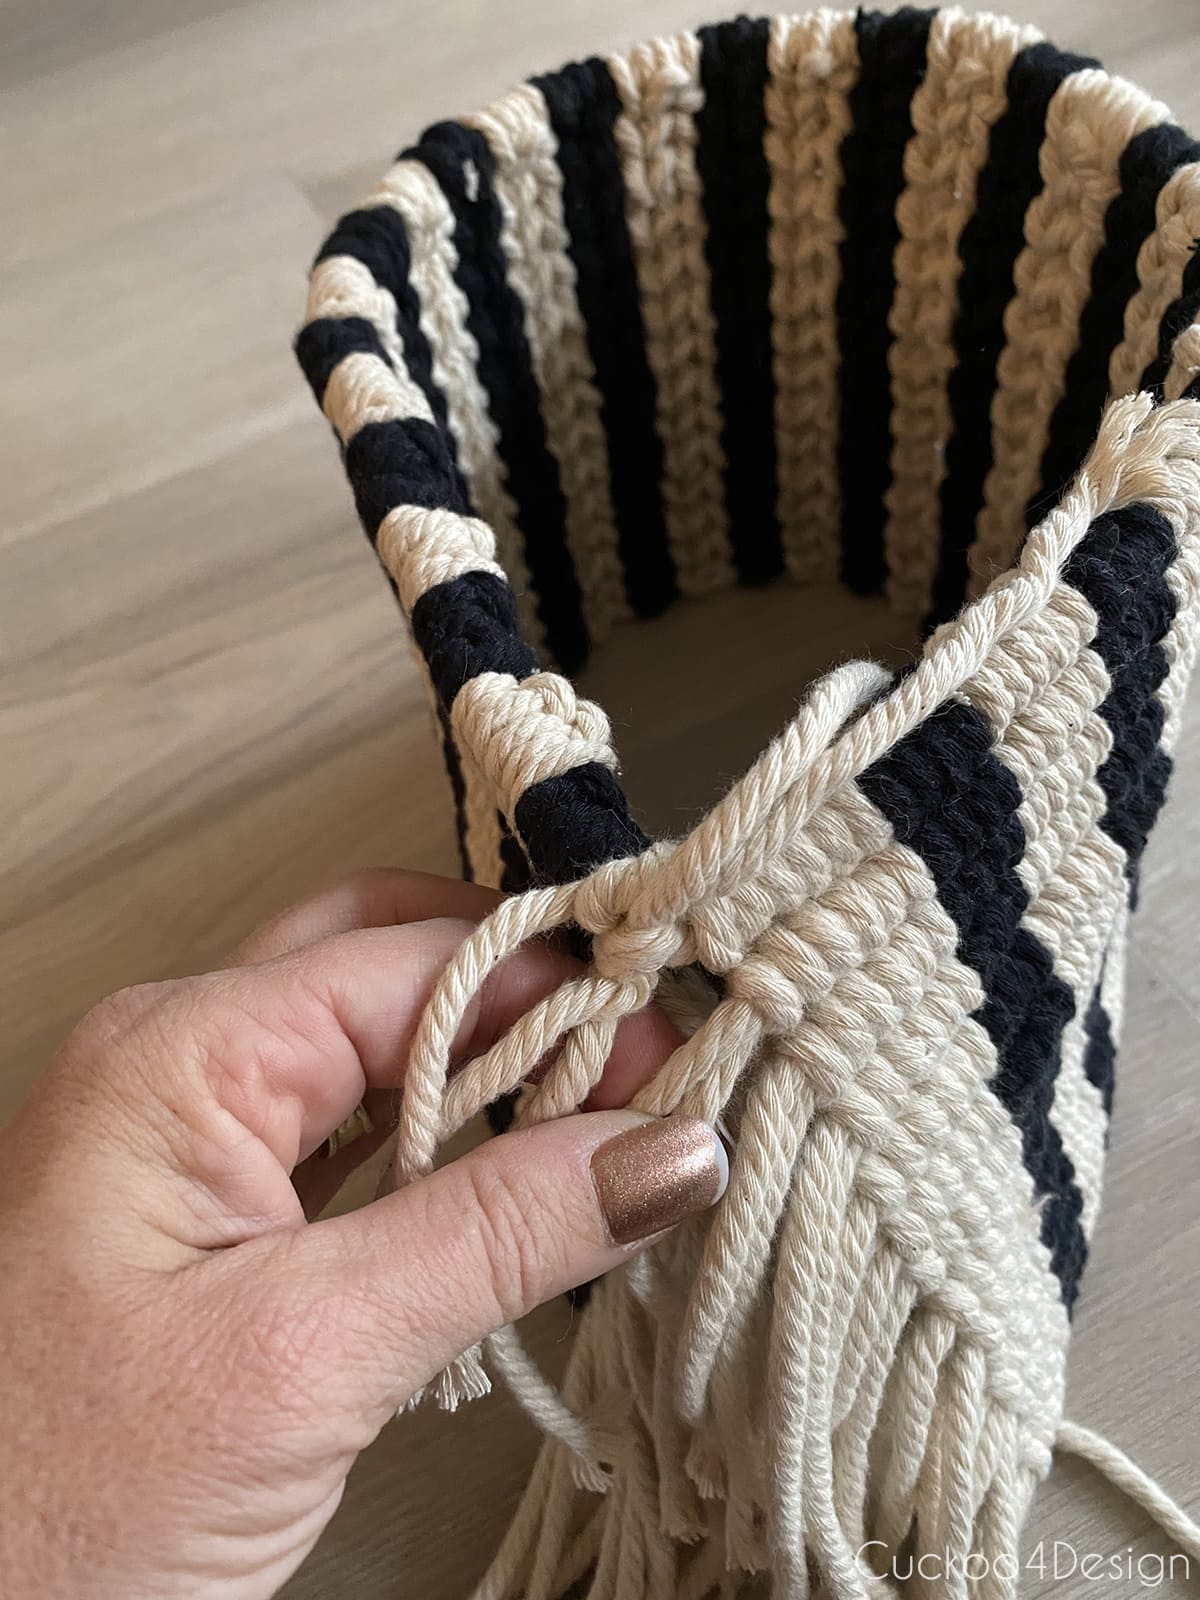 tying the macrame yarn ends to form a planter